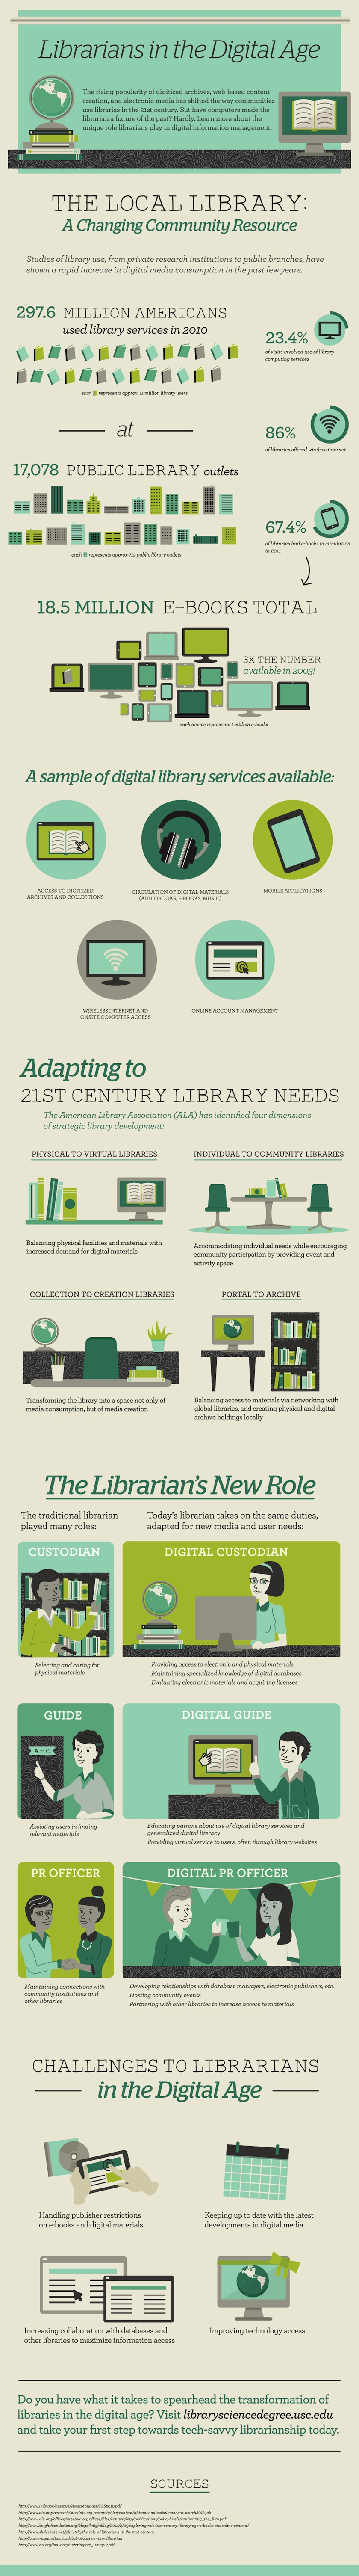 Librarians digital age - infographic